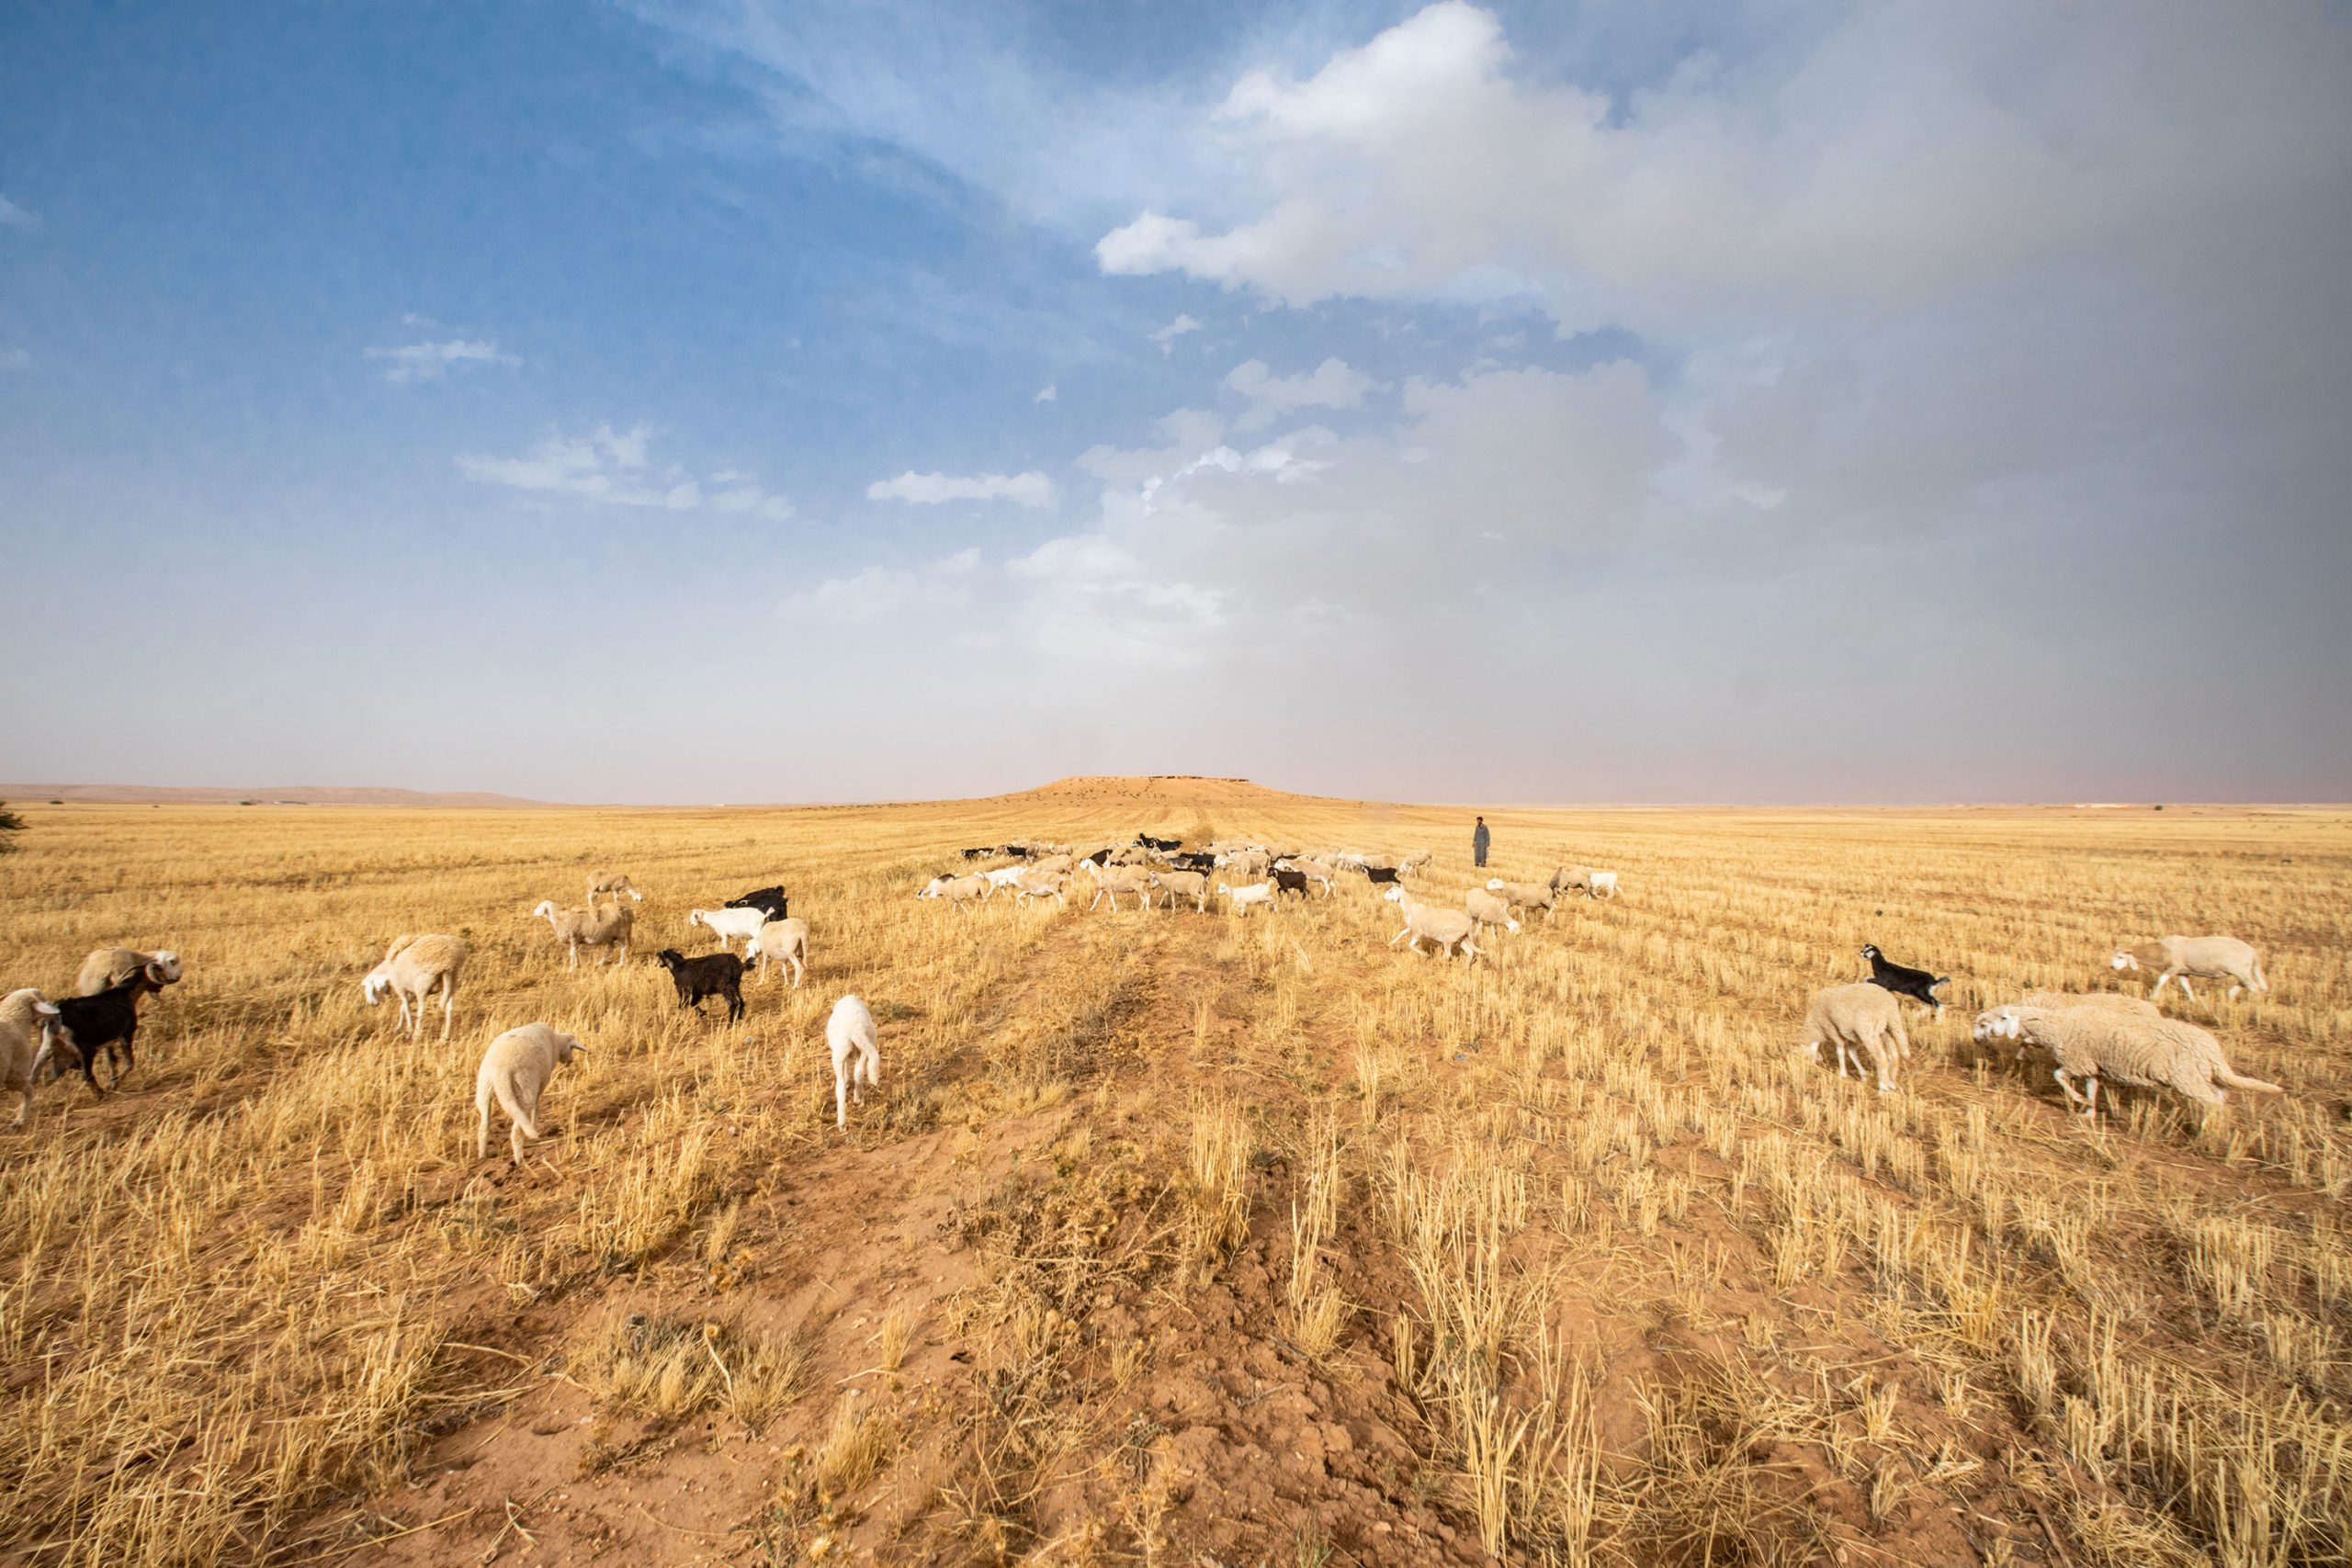 27 June 2020: A shepherd moves his flock of sheep into a field in El Guedid to graze. (Photograph by Abderazak HadjTahar)